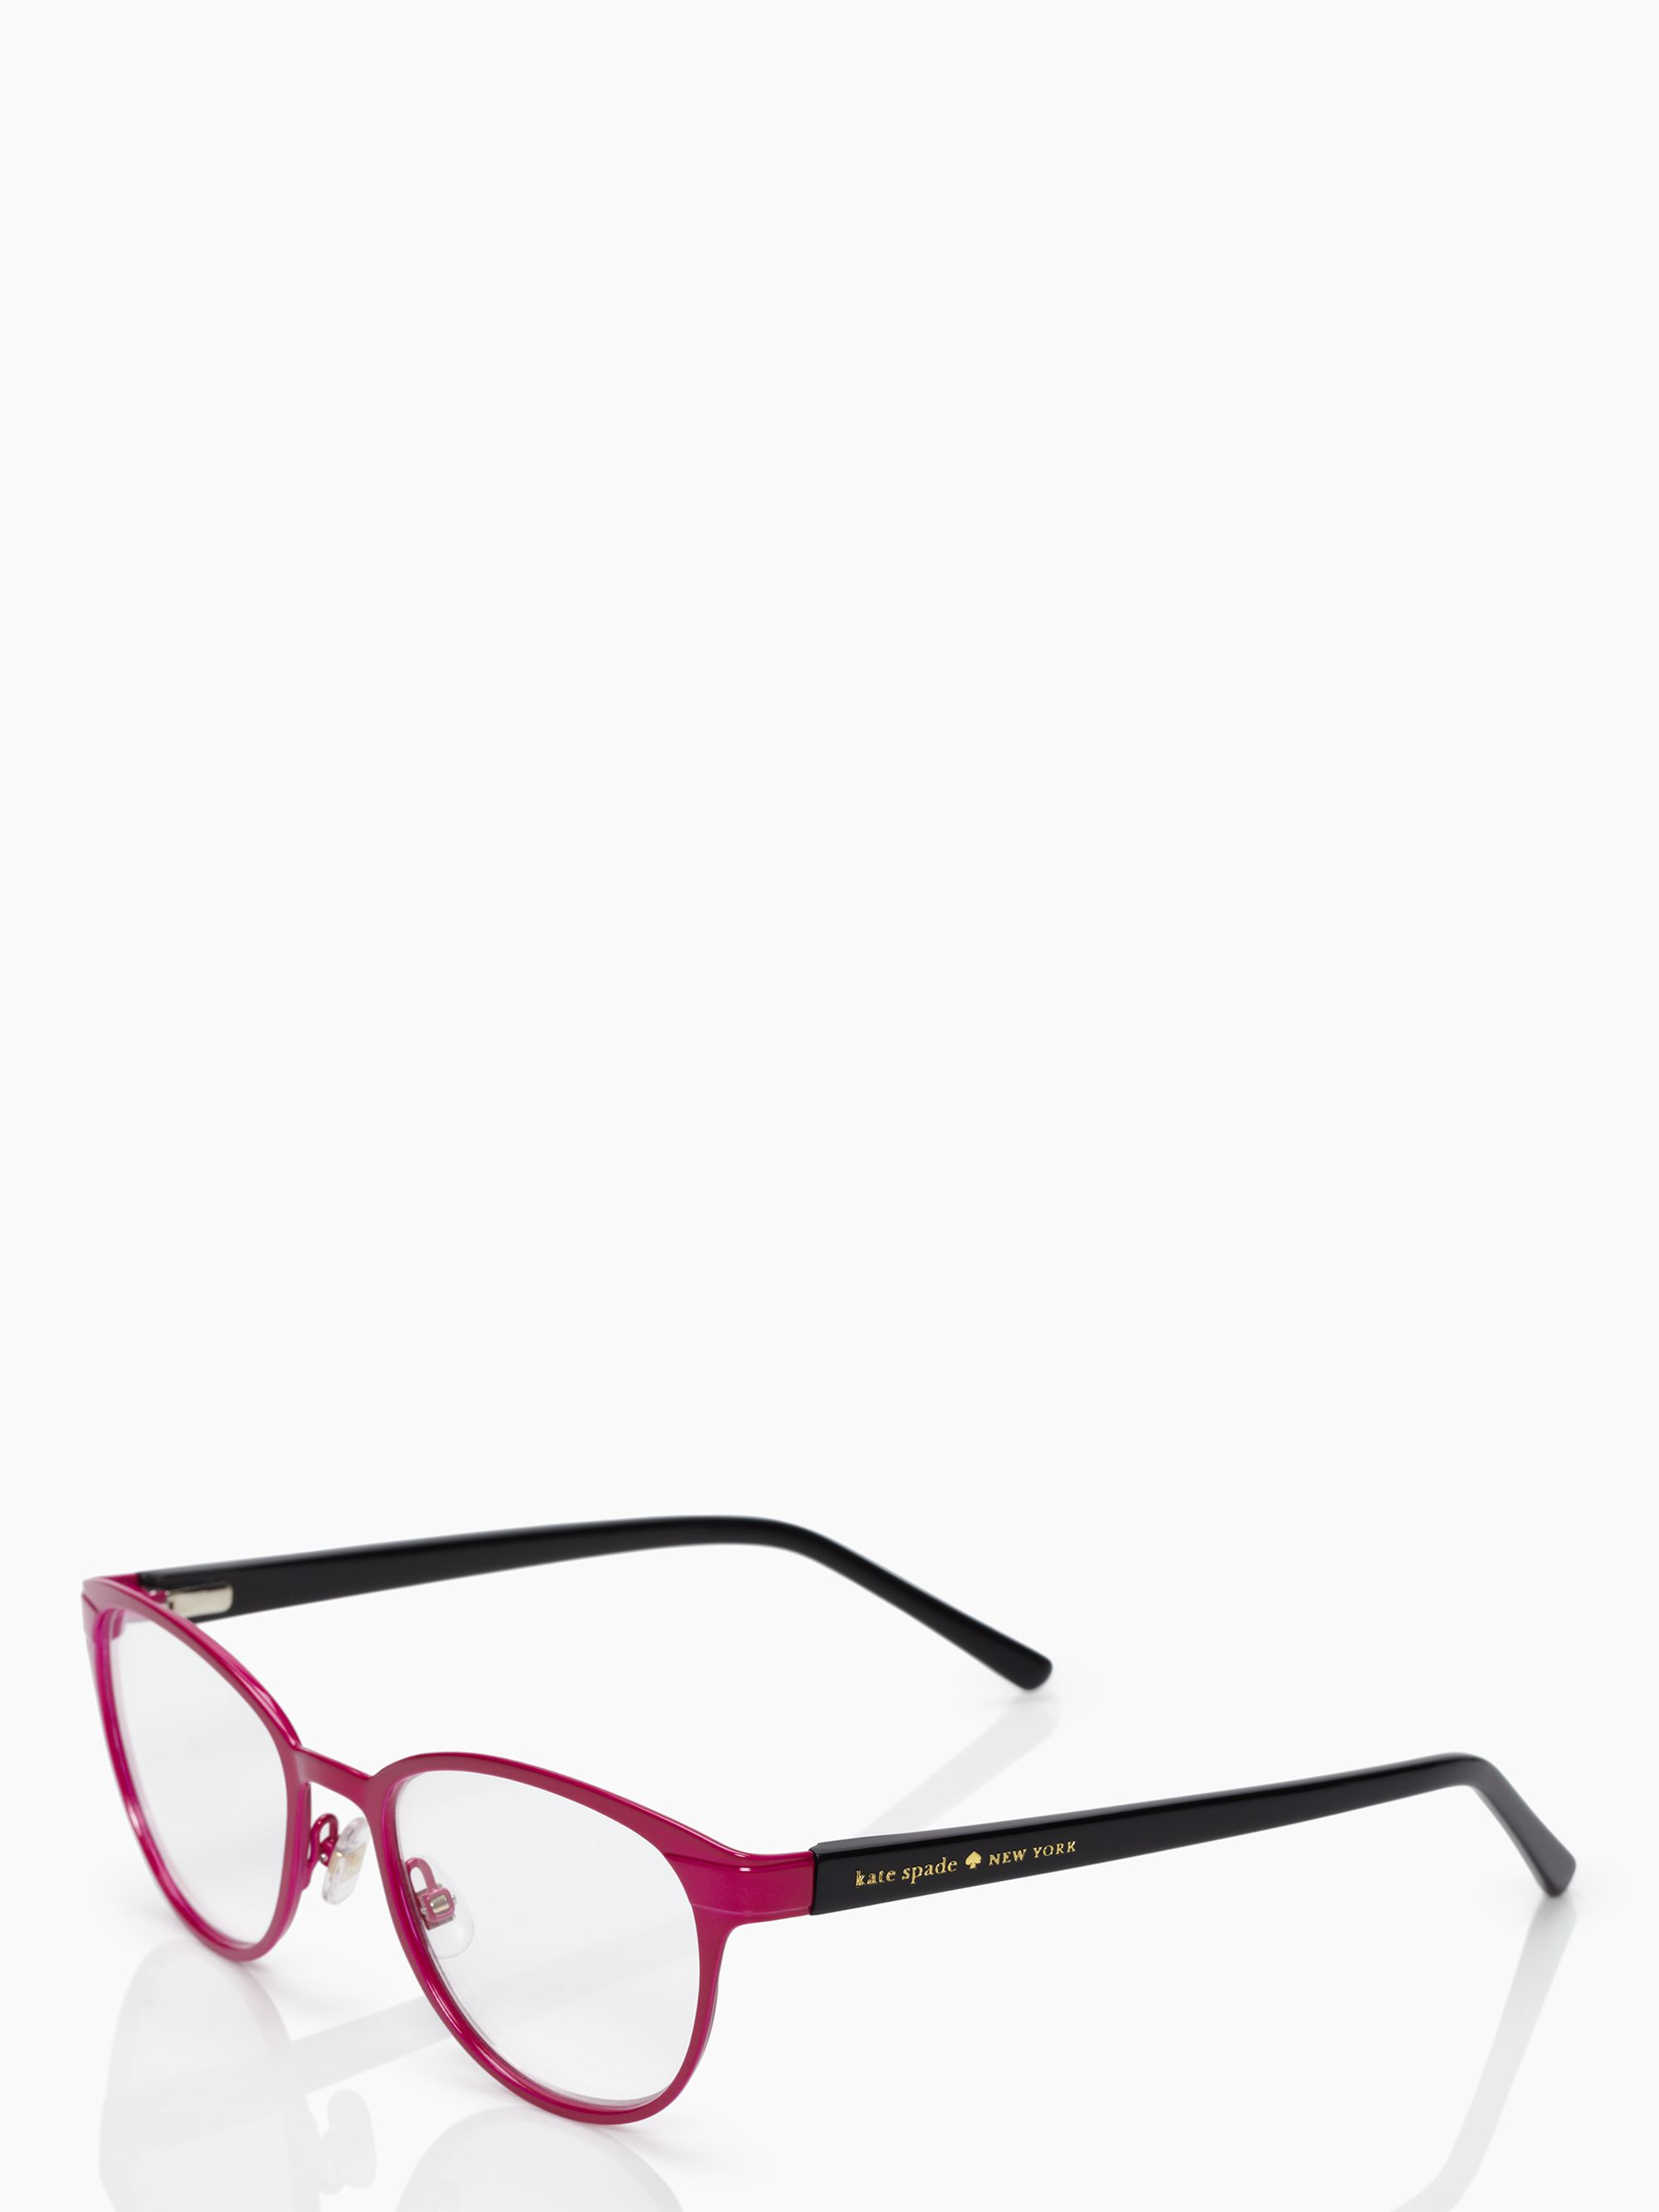 52361f06195 Lyst - Kate Spade Ebba in Pink